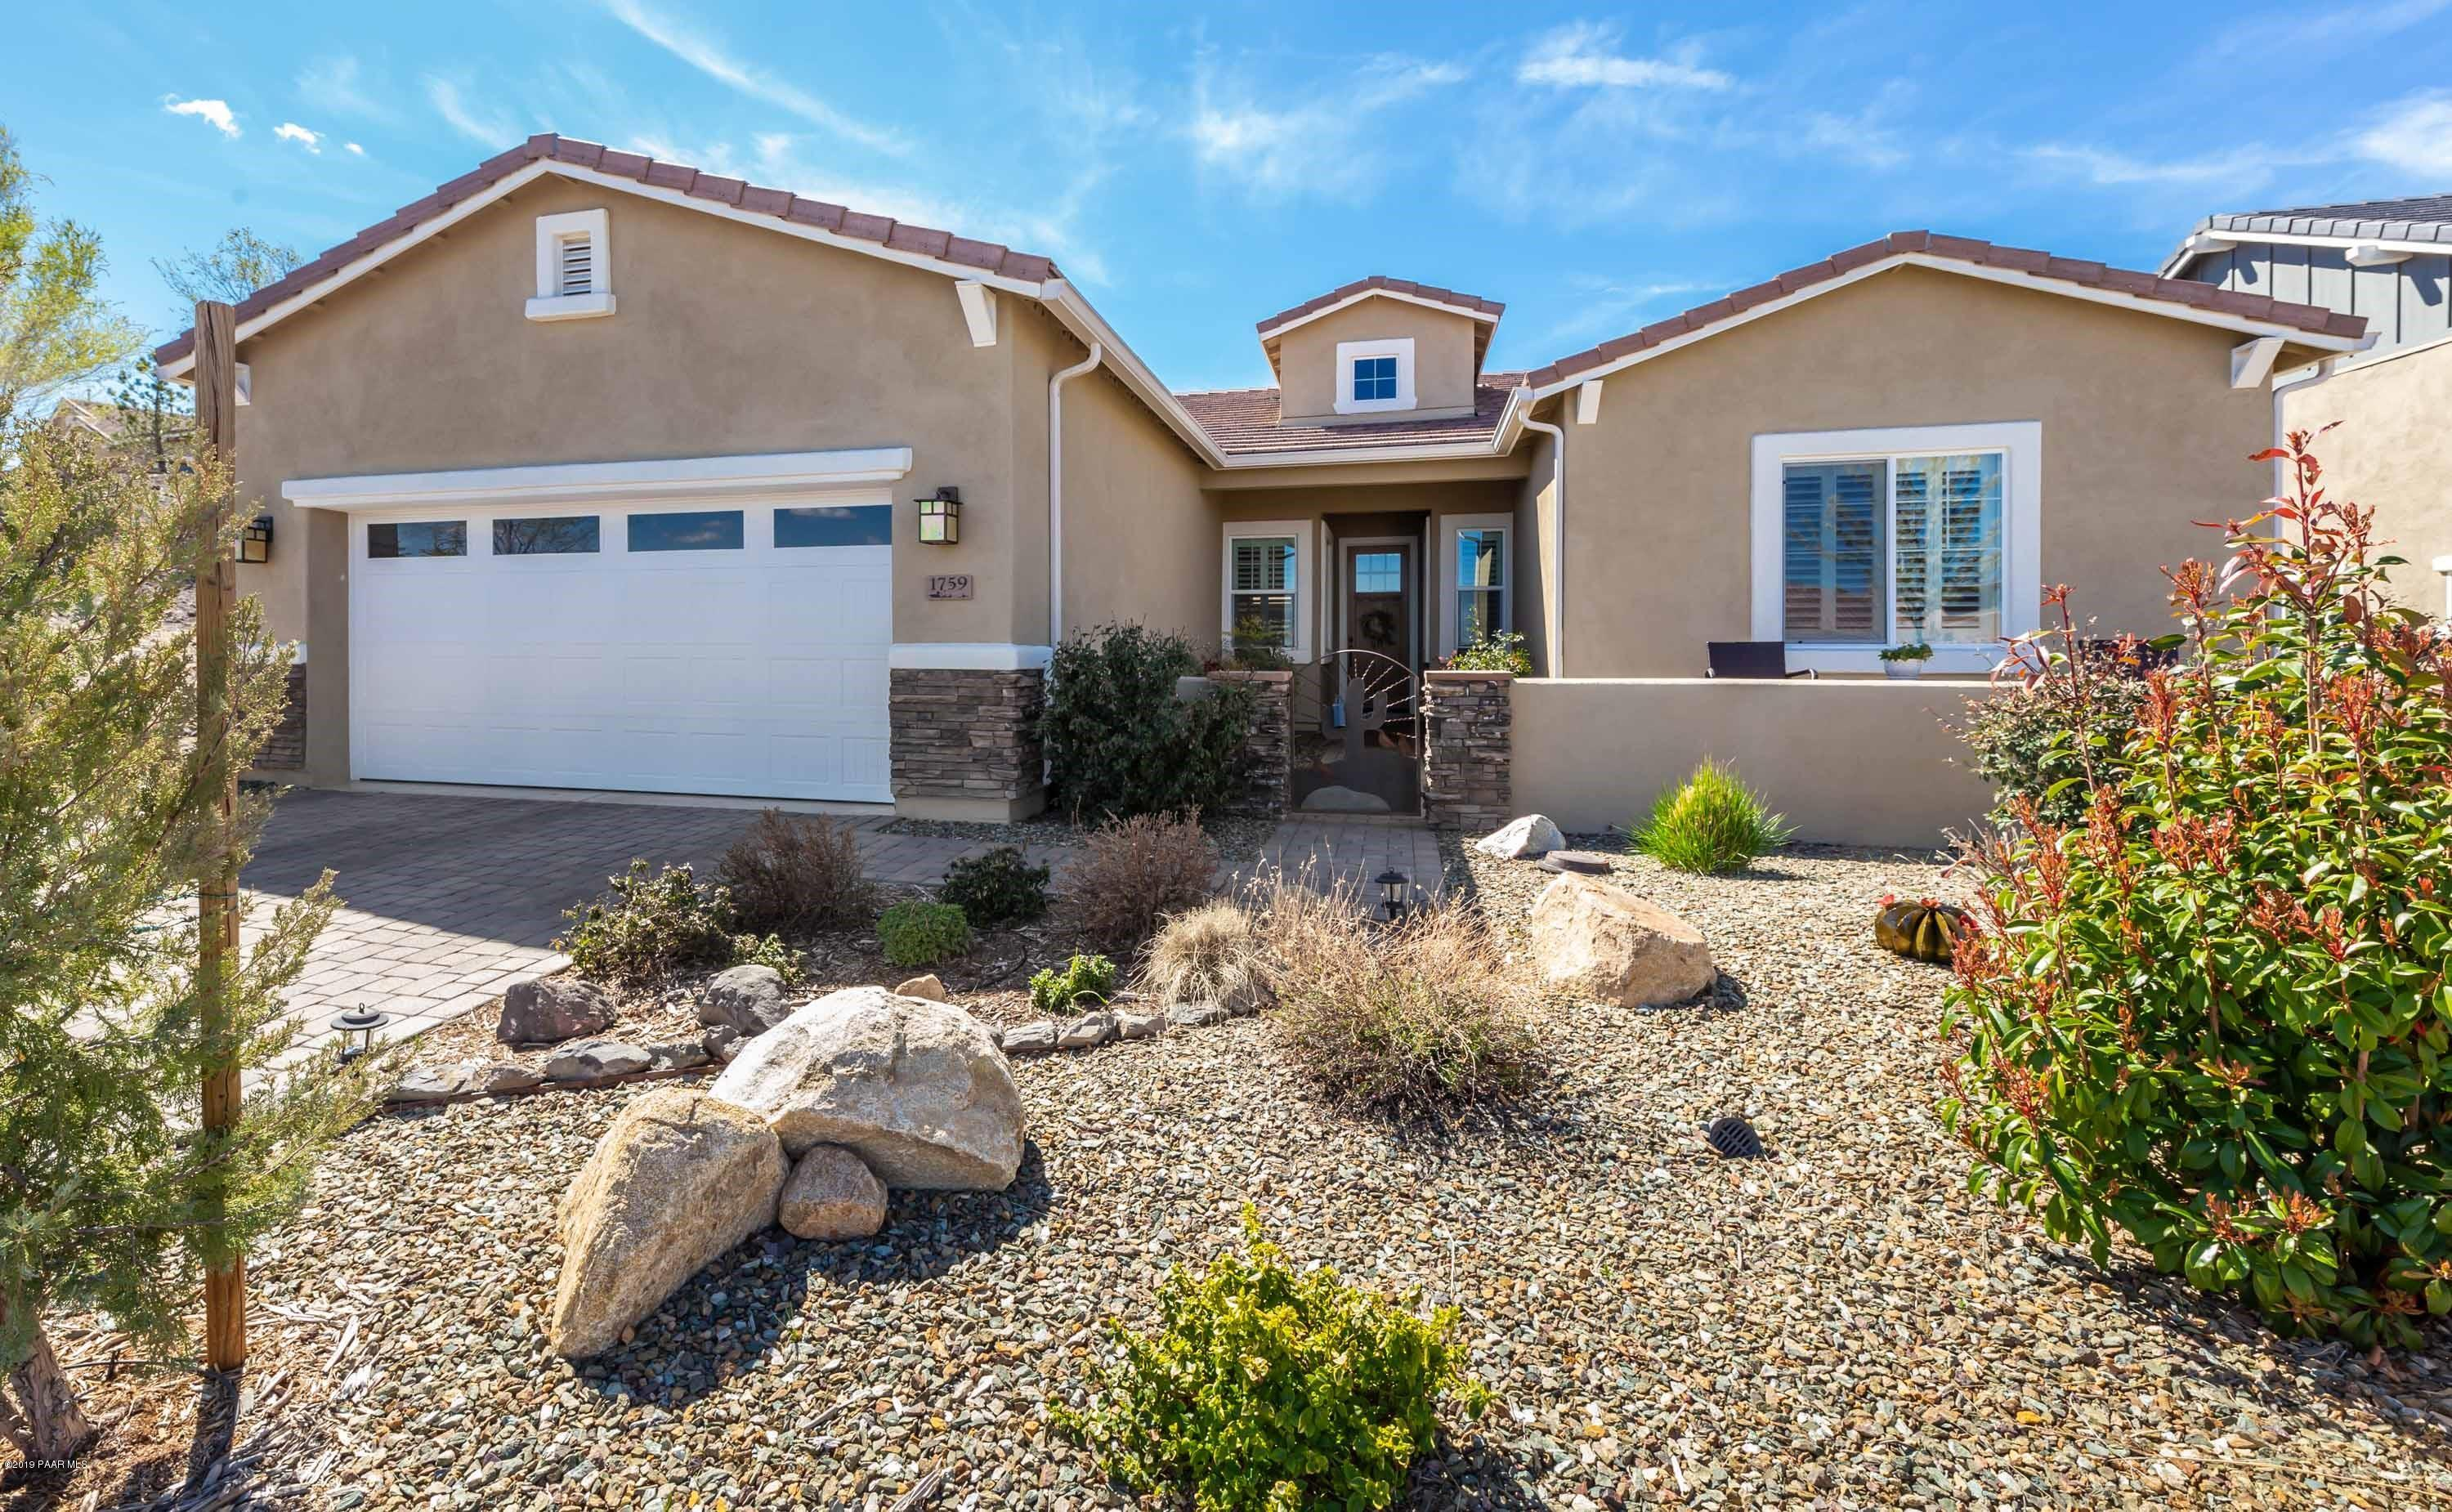 Photo of 1759 Ascott, Prescott, AZ 86301